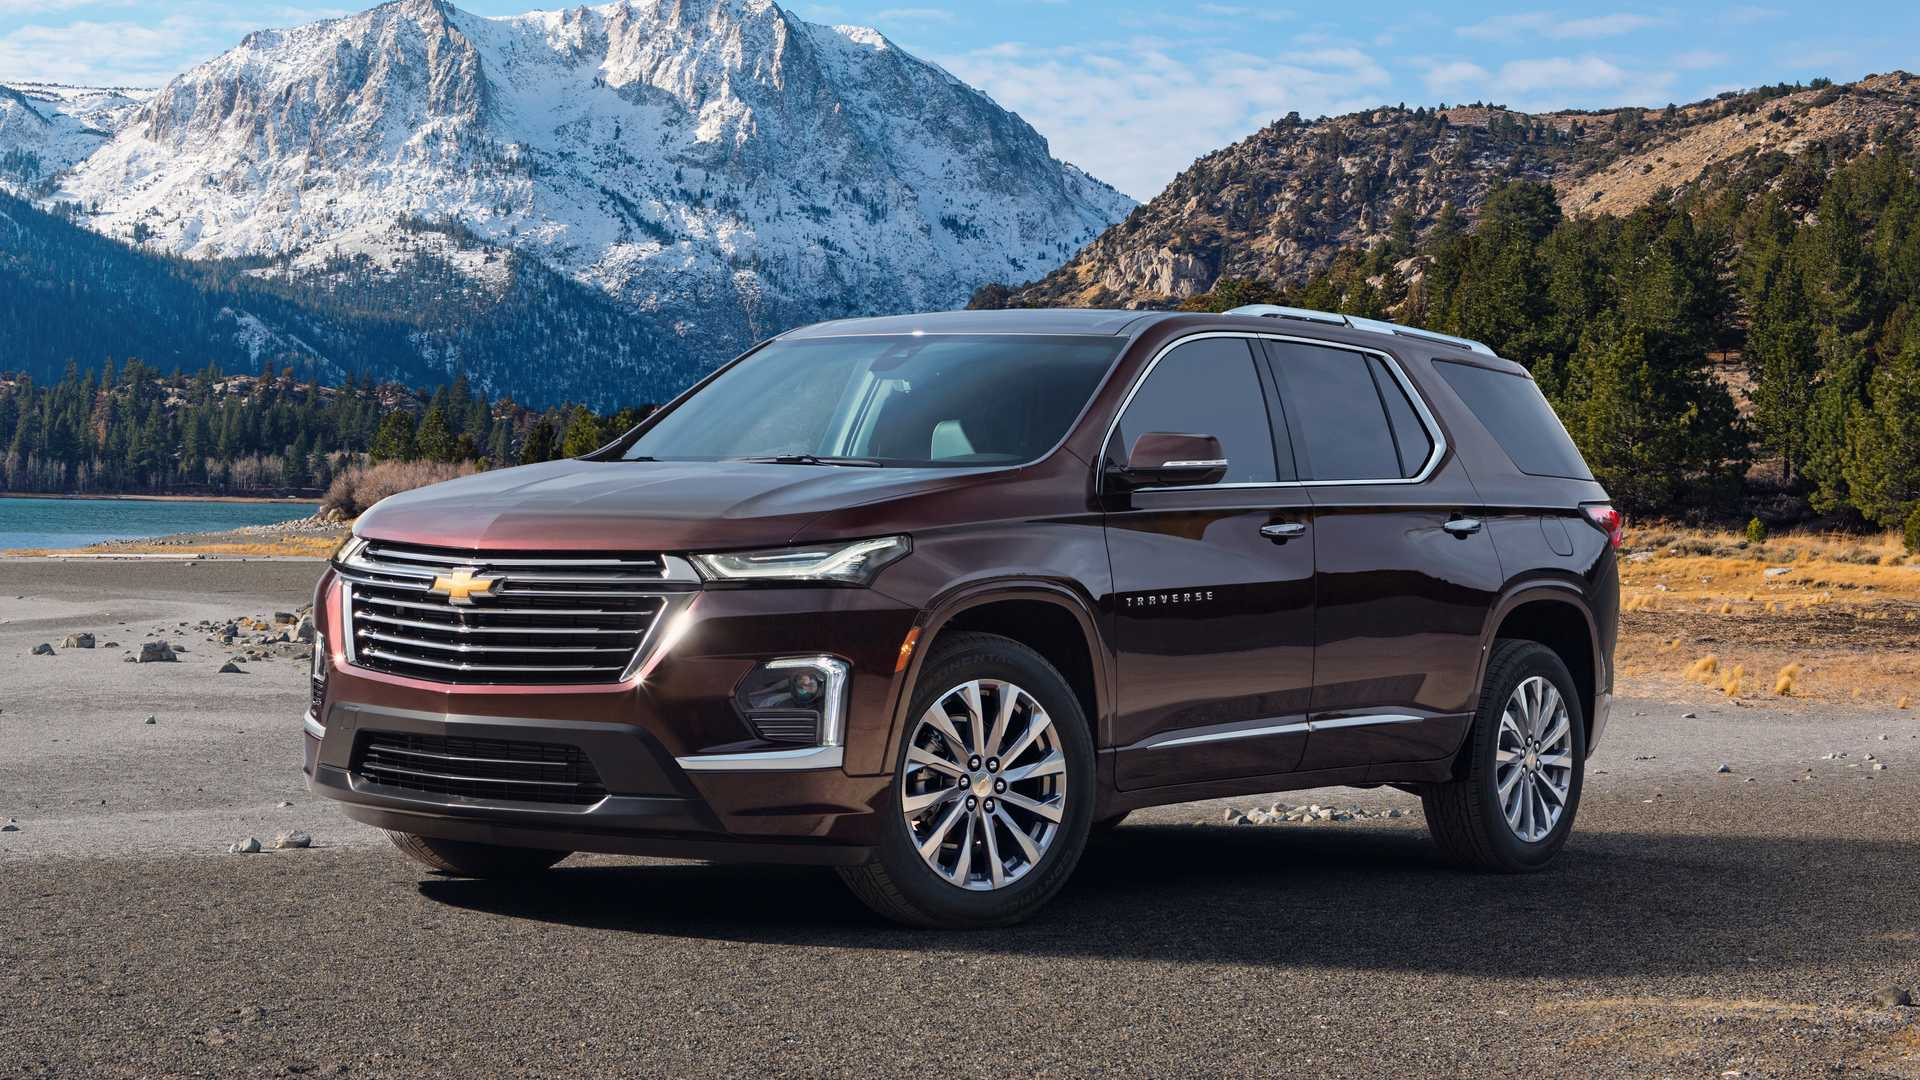 Chevrolet Traverse Facelift (2020) 3